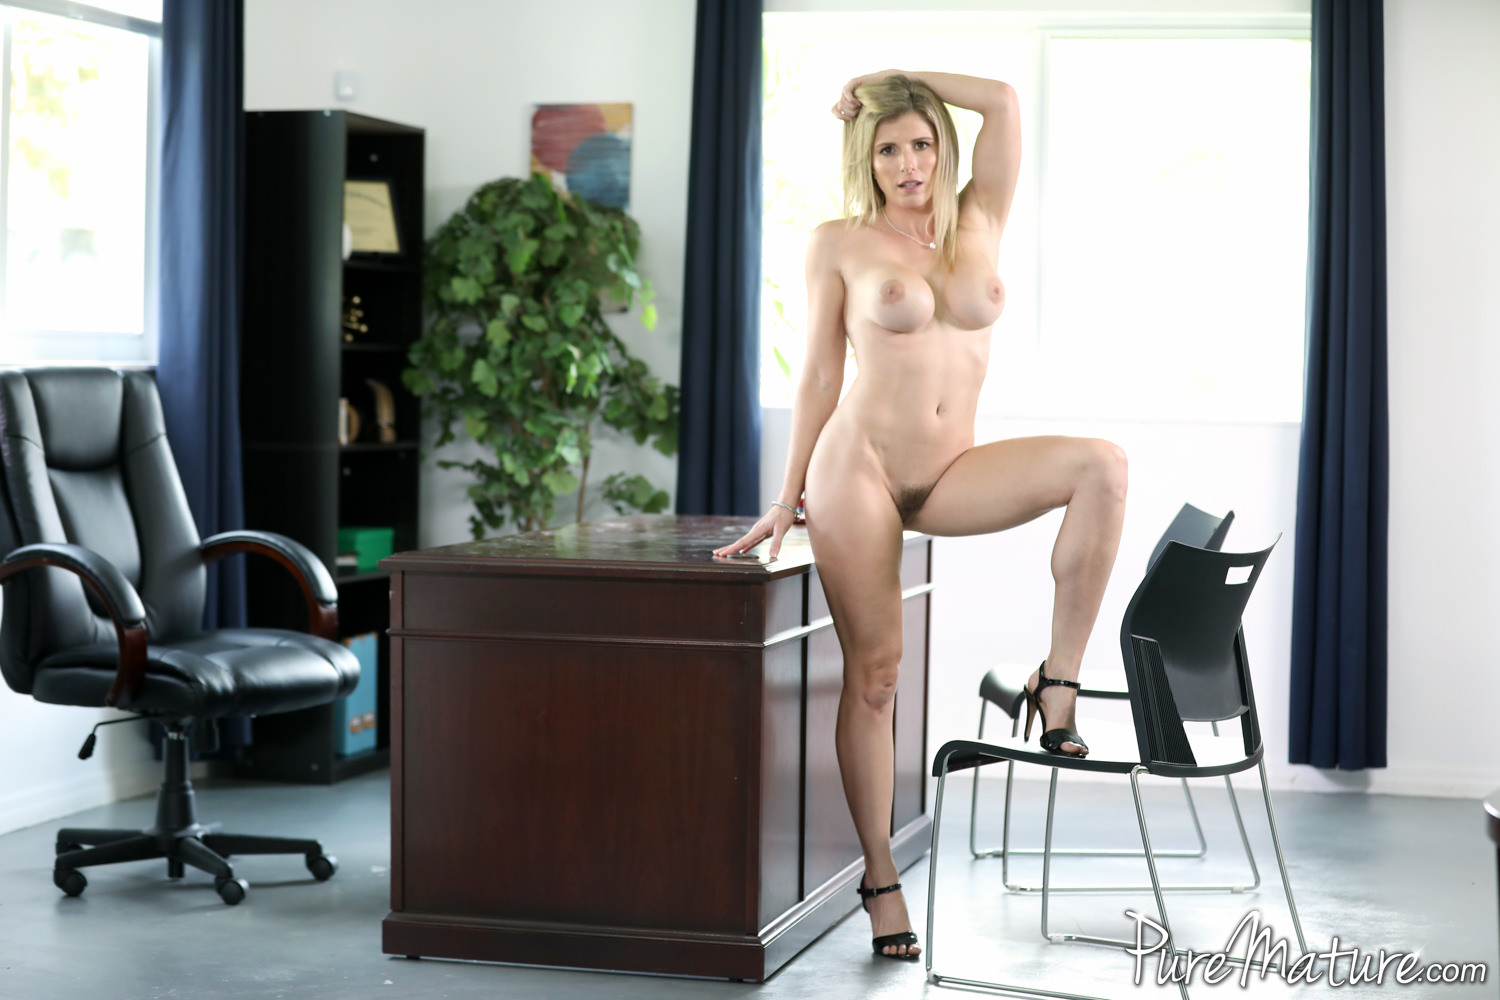 Sexually harassed by riley reyes shiny pantyhose cei - 3 4